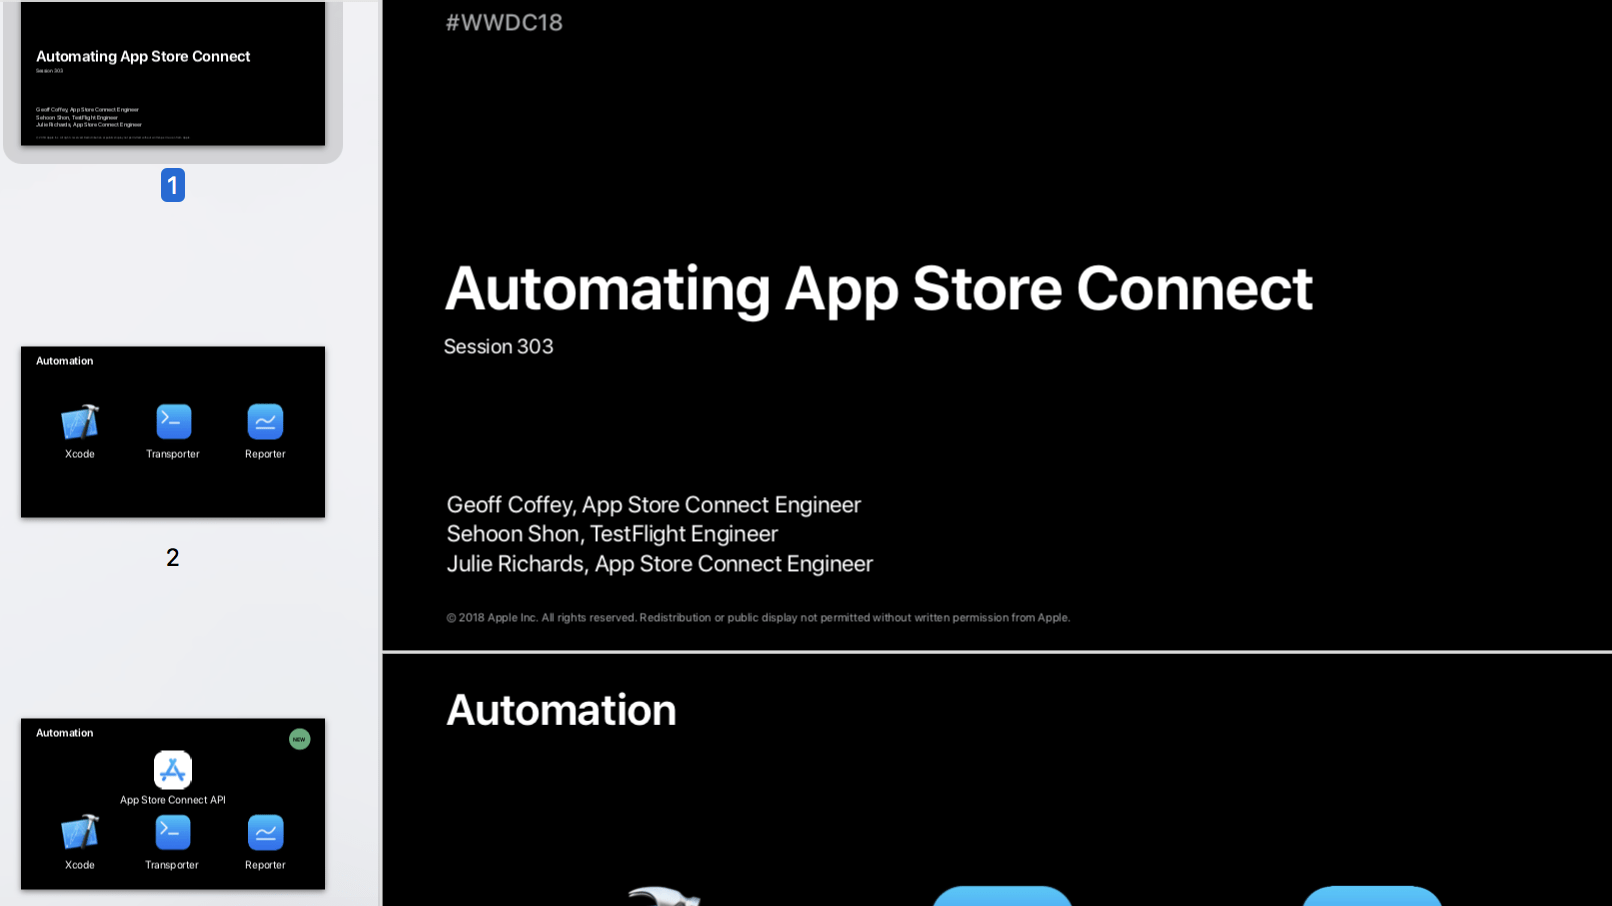 App Store Connect Automation Session 303 WWDC 18